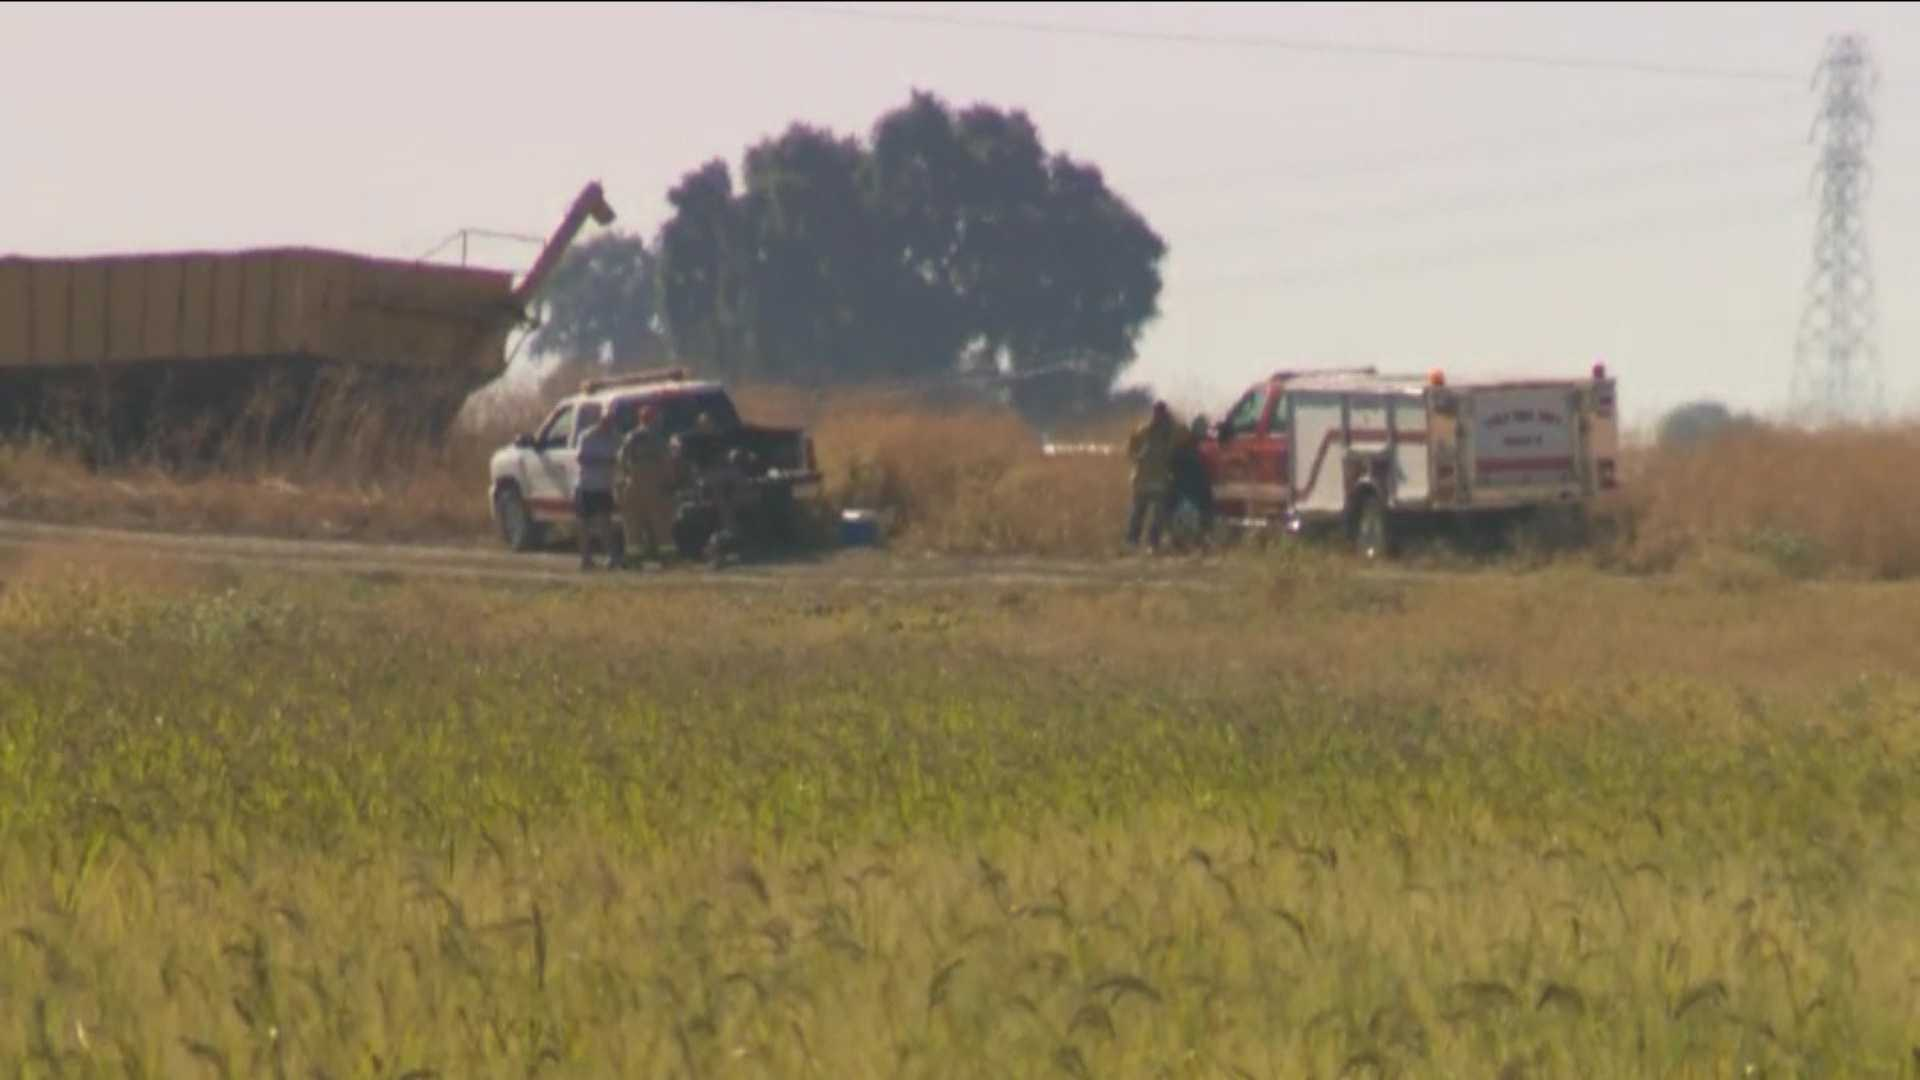 Emergency crews were at the scene of the crop duster crash in Yolo County on Saturday, July 23, 2016.